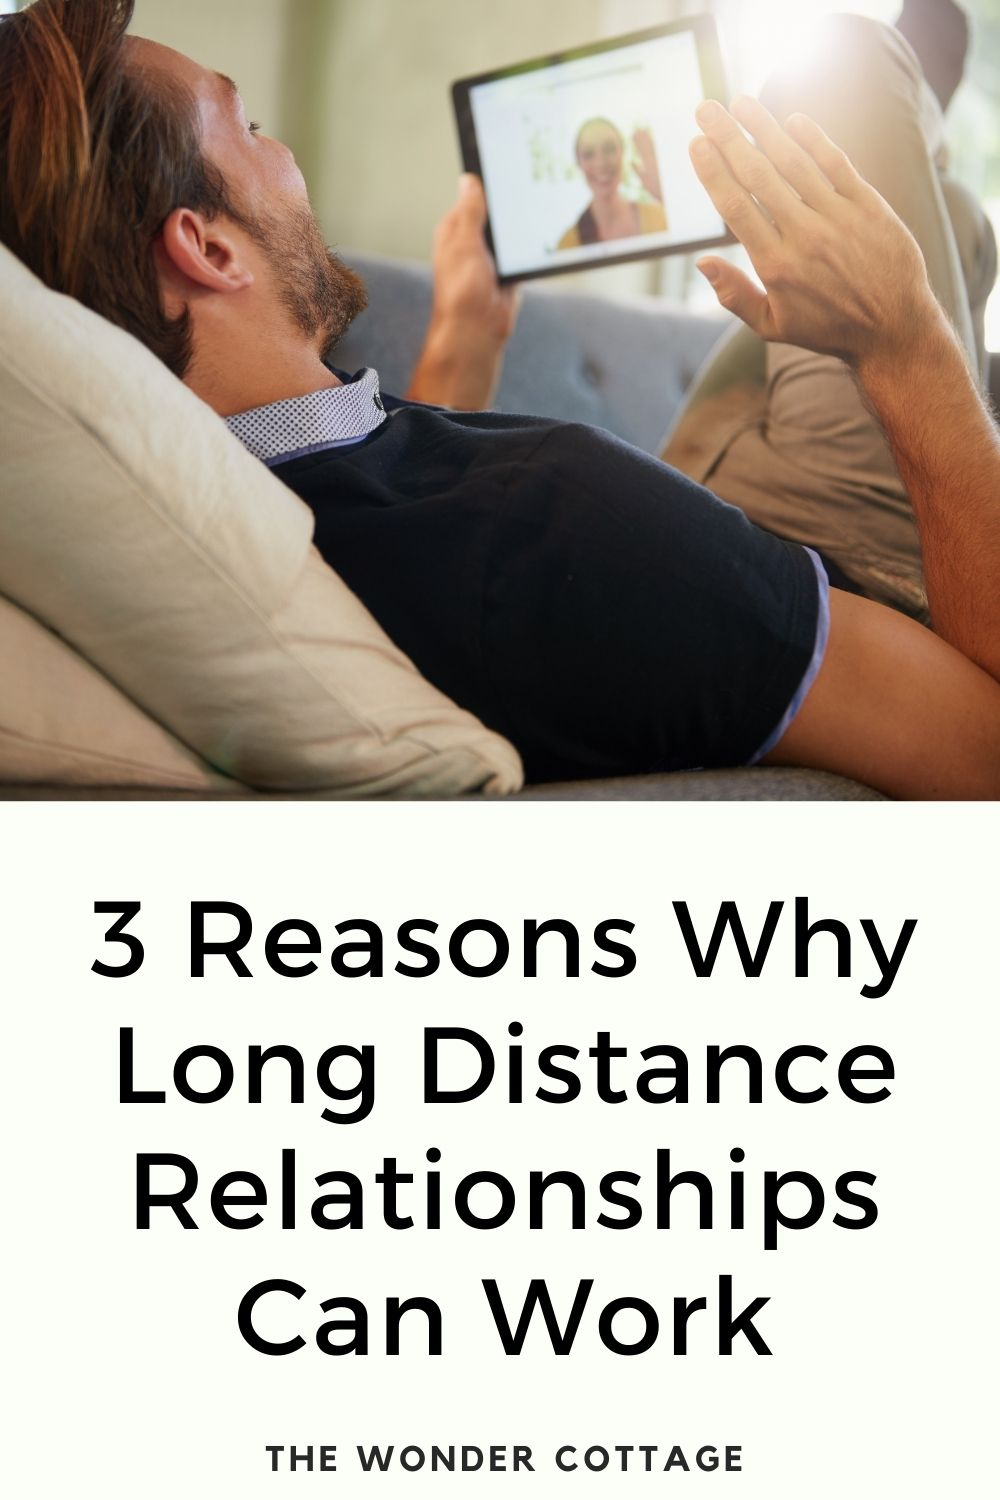 3 reasons why long distance re;lationships can work